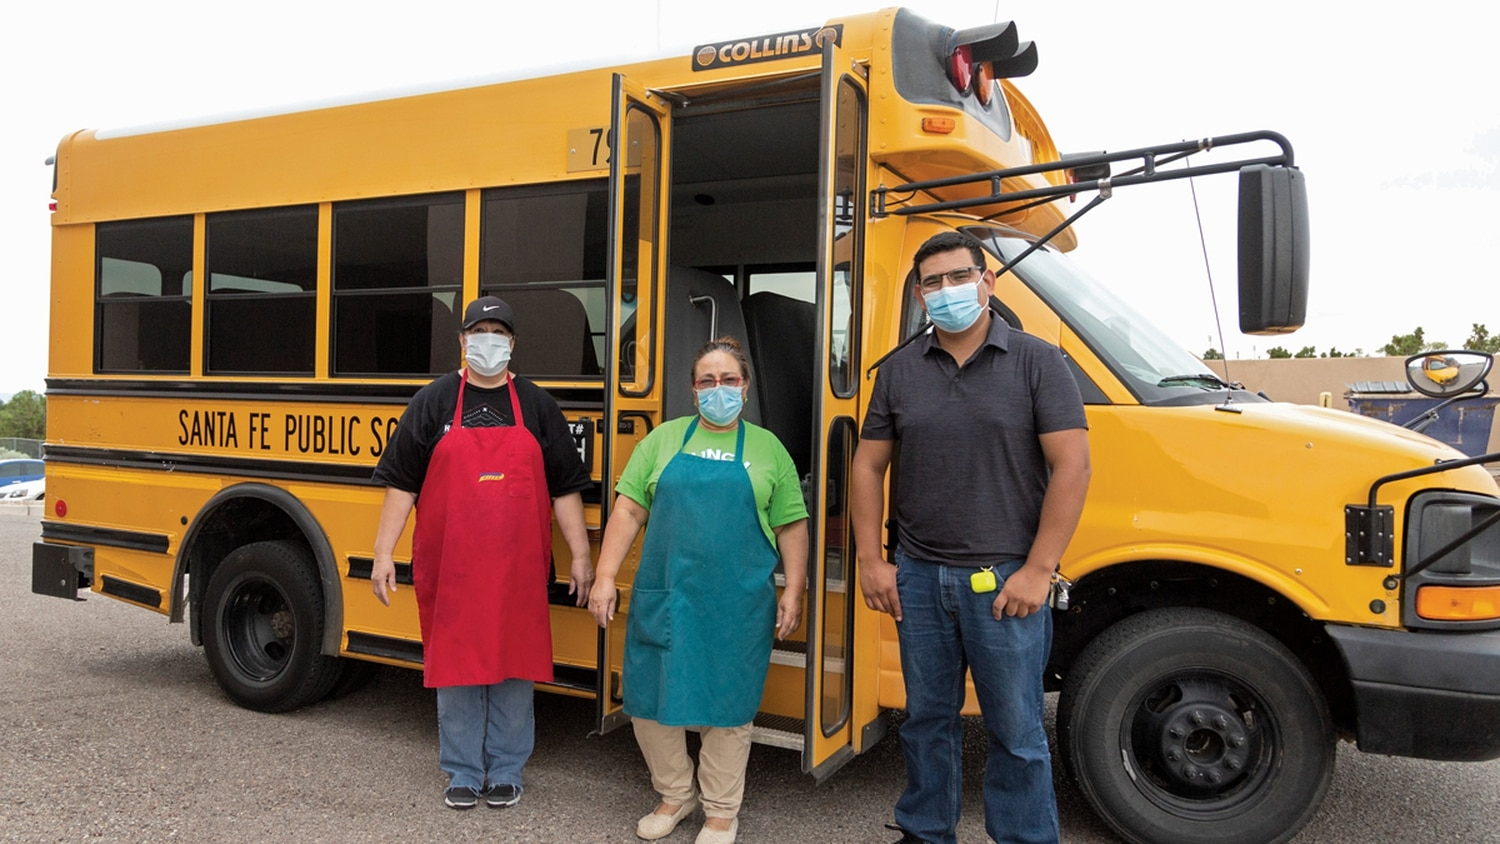 Mariam Bartleson, left, and her coworkers loaded up prepared meals onto a school bus at Chaparral Elementary School in Santa Fe on June 26. The team then drove to the village of Glorieta to deliver the meals to families who need them.